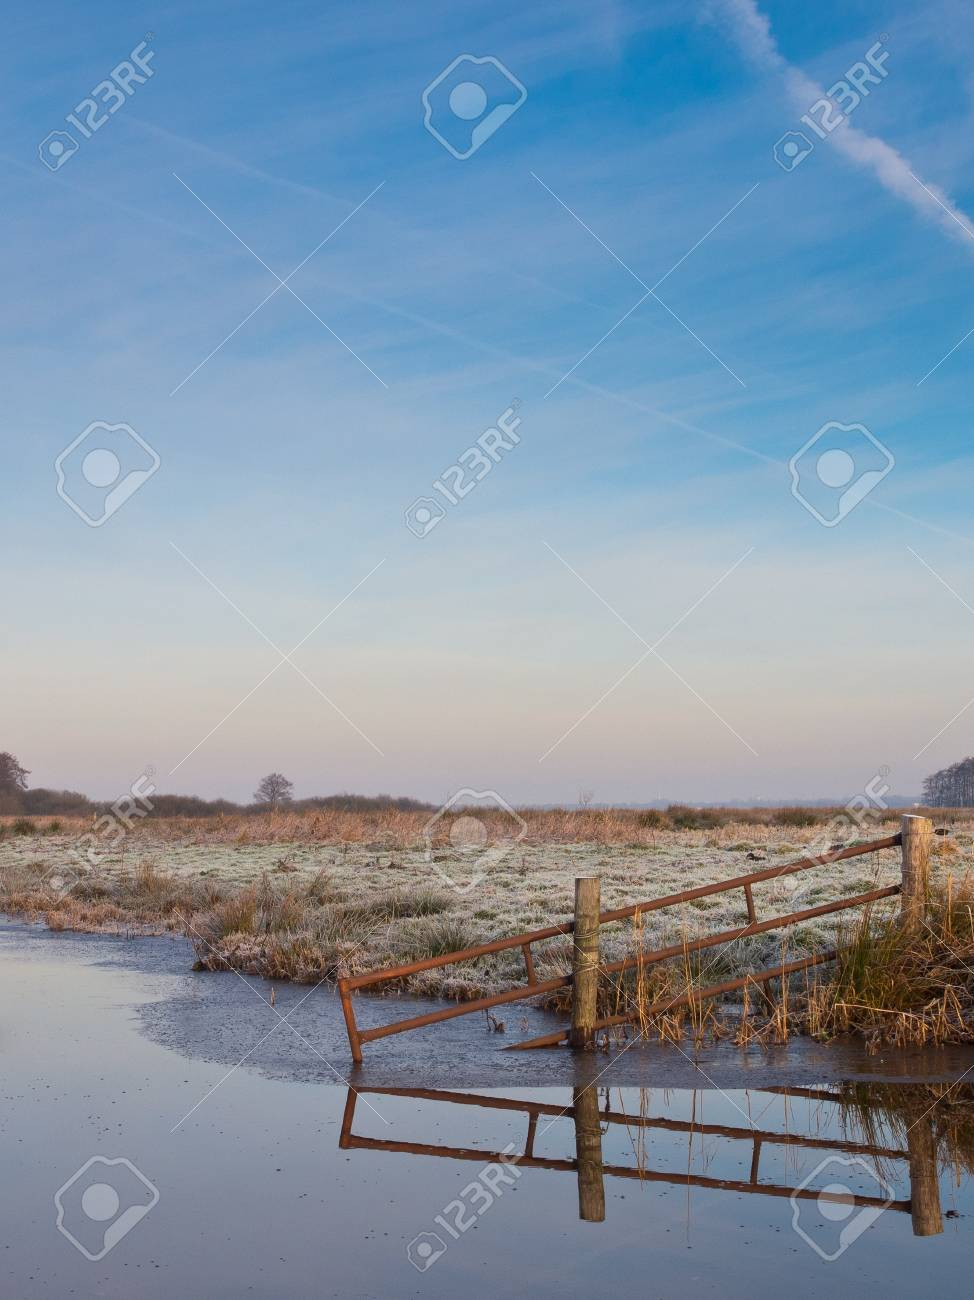 Gate used as fence in scenic rural winter landscape Stock Photo - 12285861